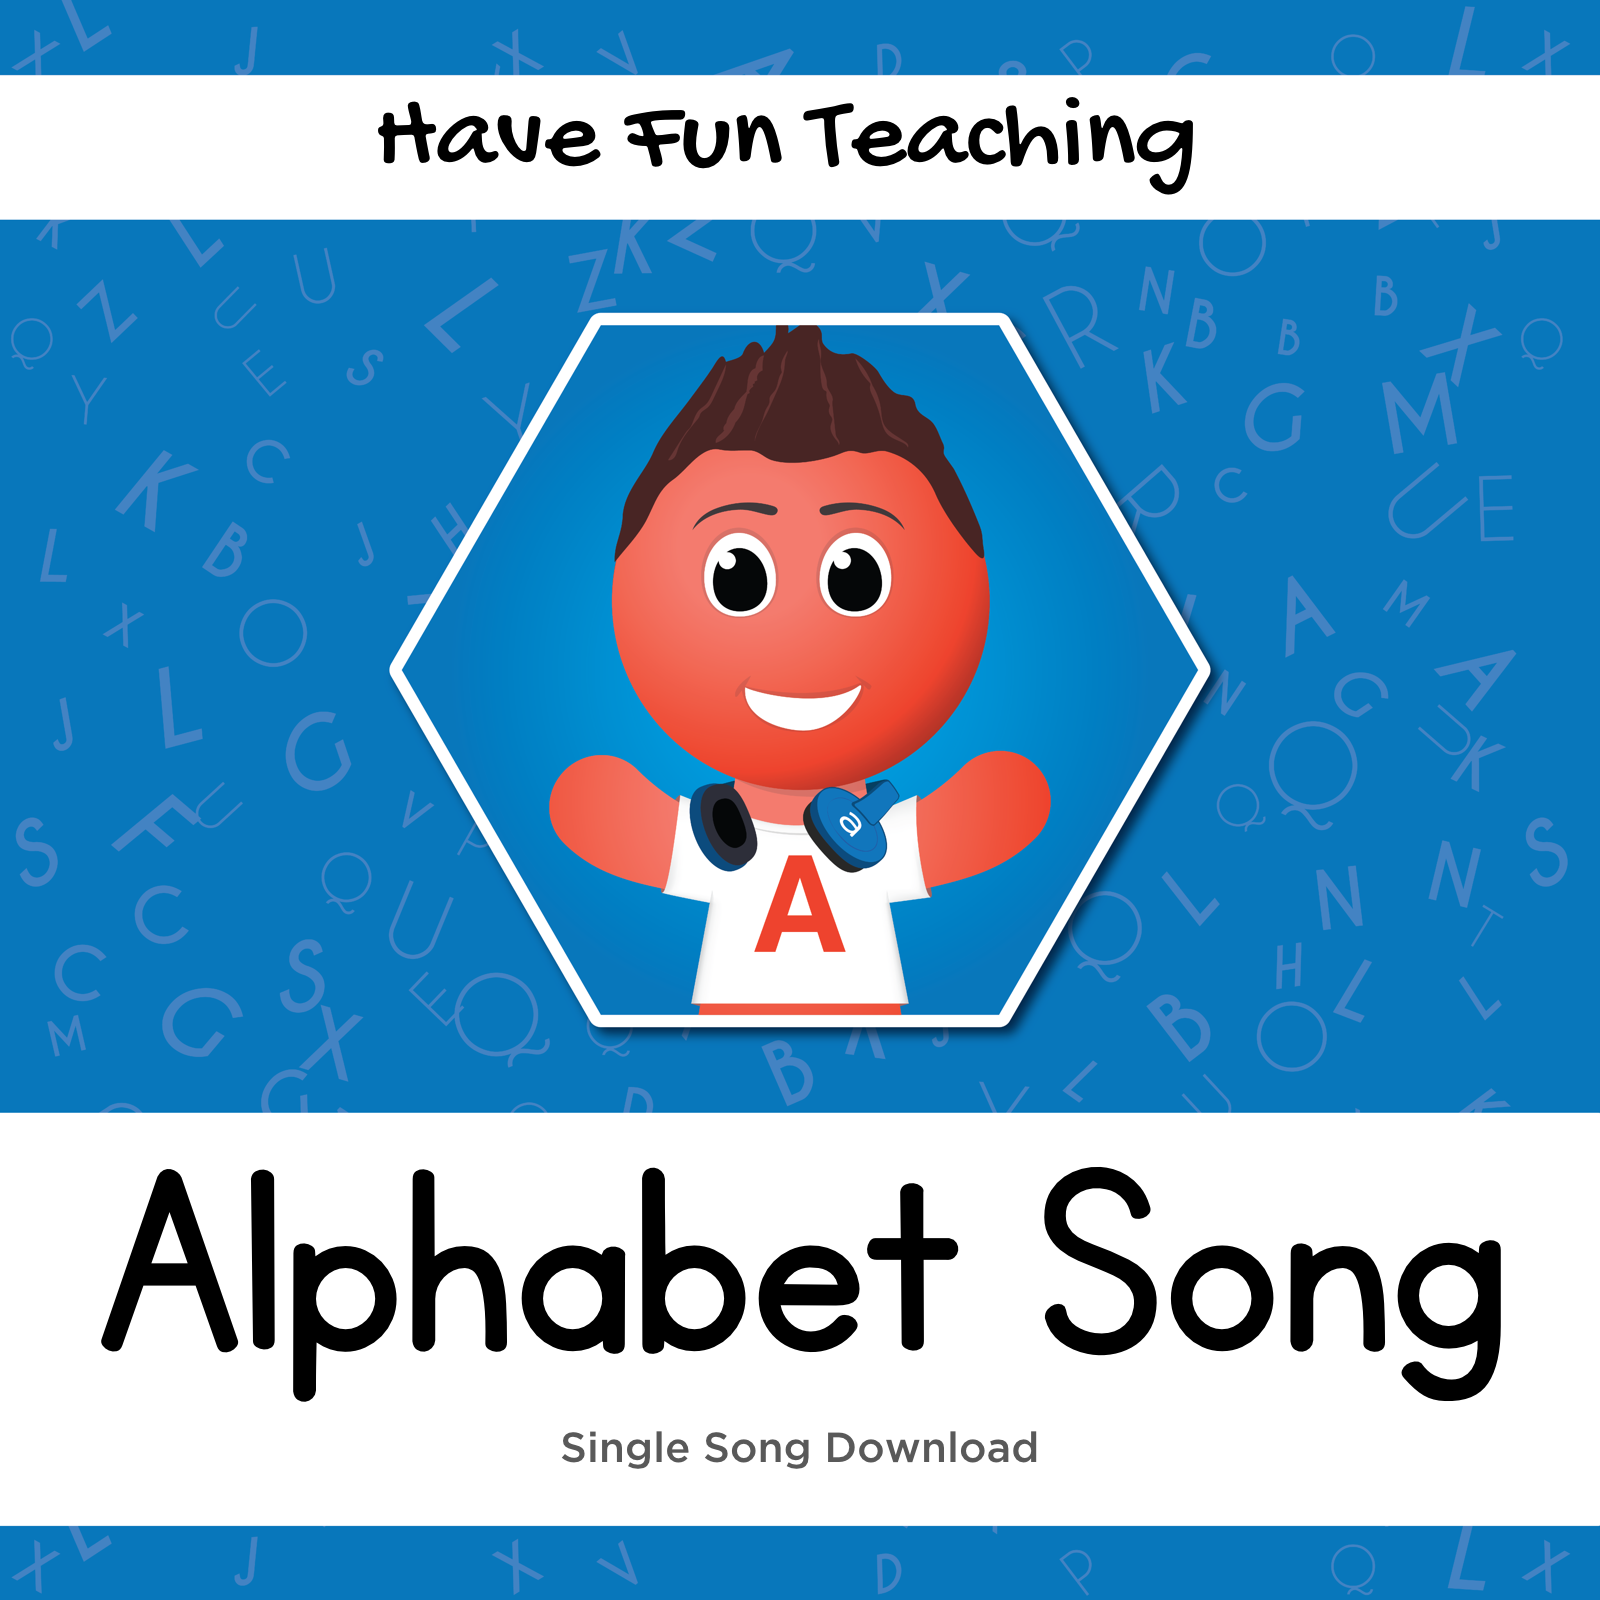 Alphabet Song Official Alphabet Music Video By Have Fun Teaching